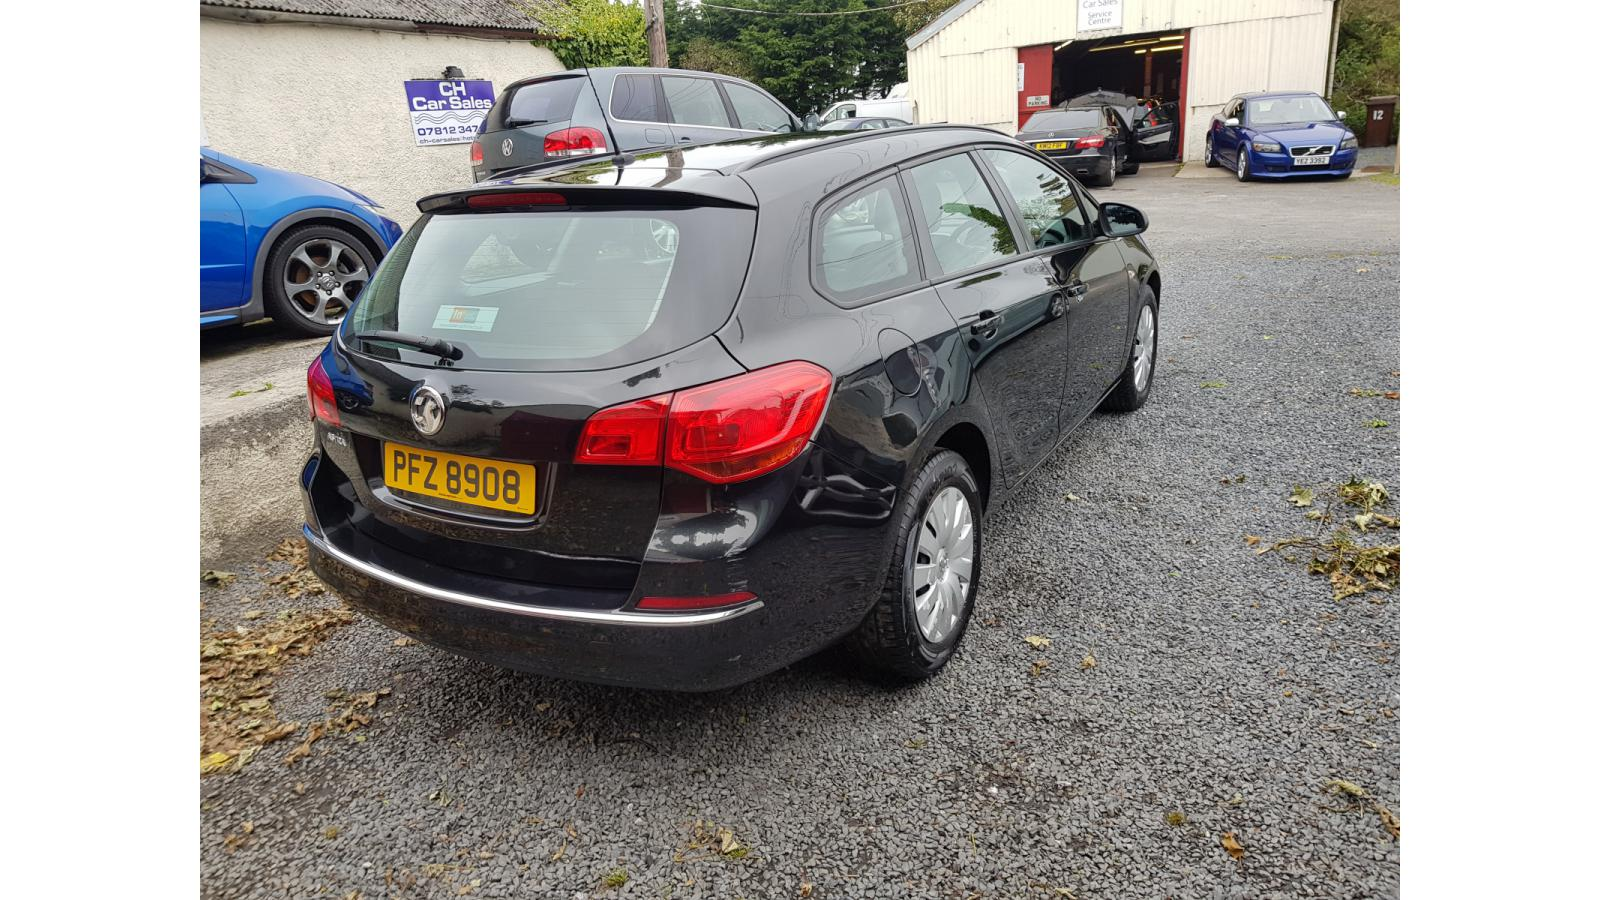 Vauxhall Astra 2014 buy and sell cars, parts, services in ...